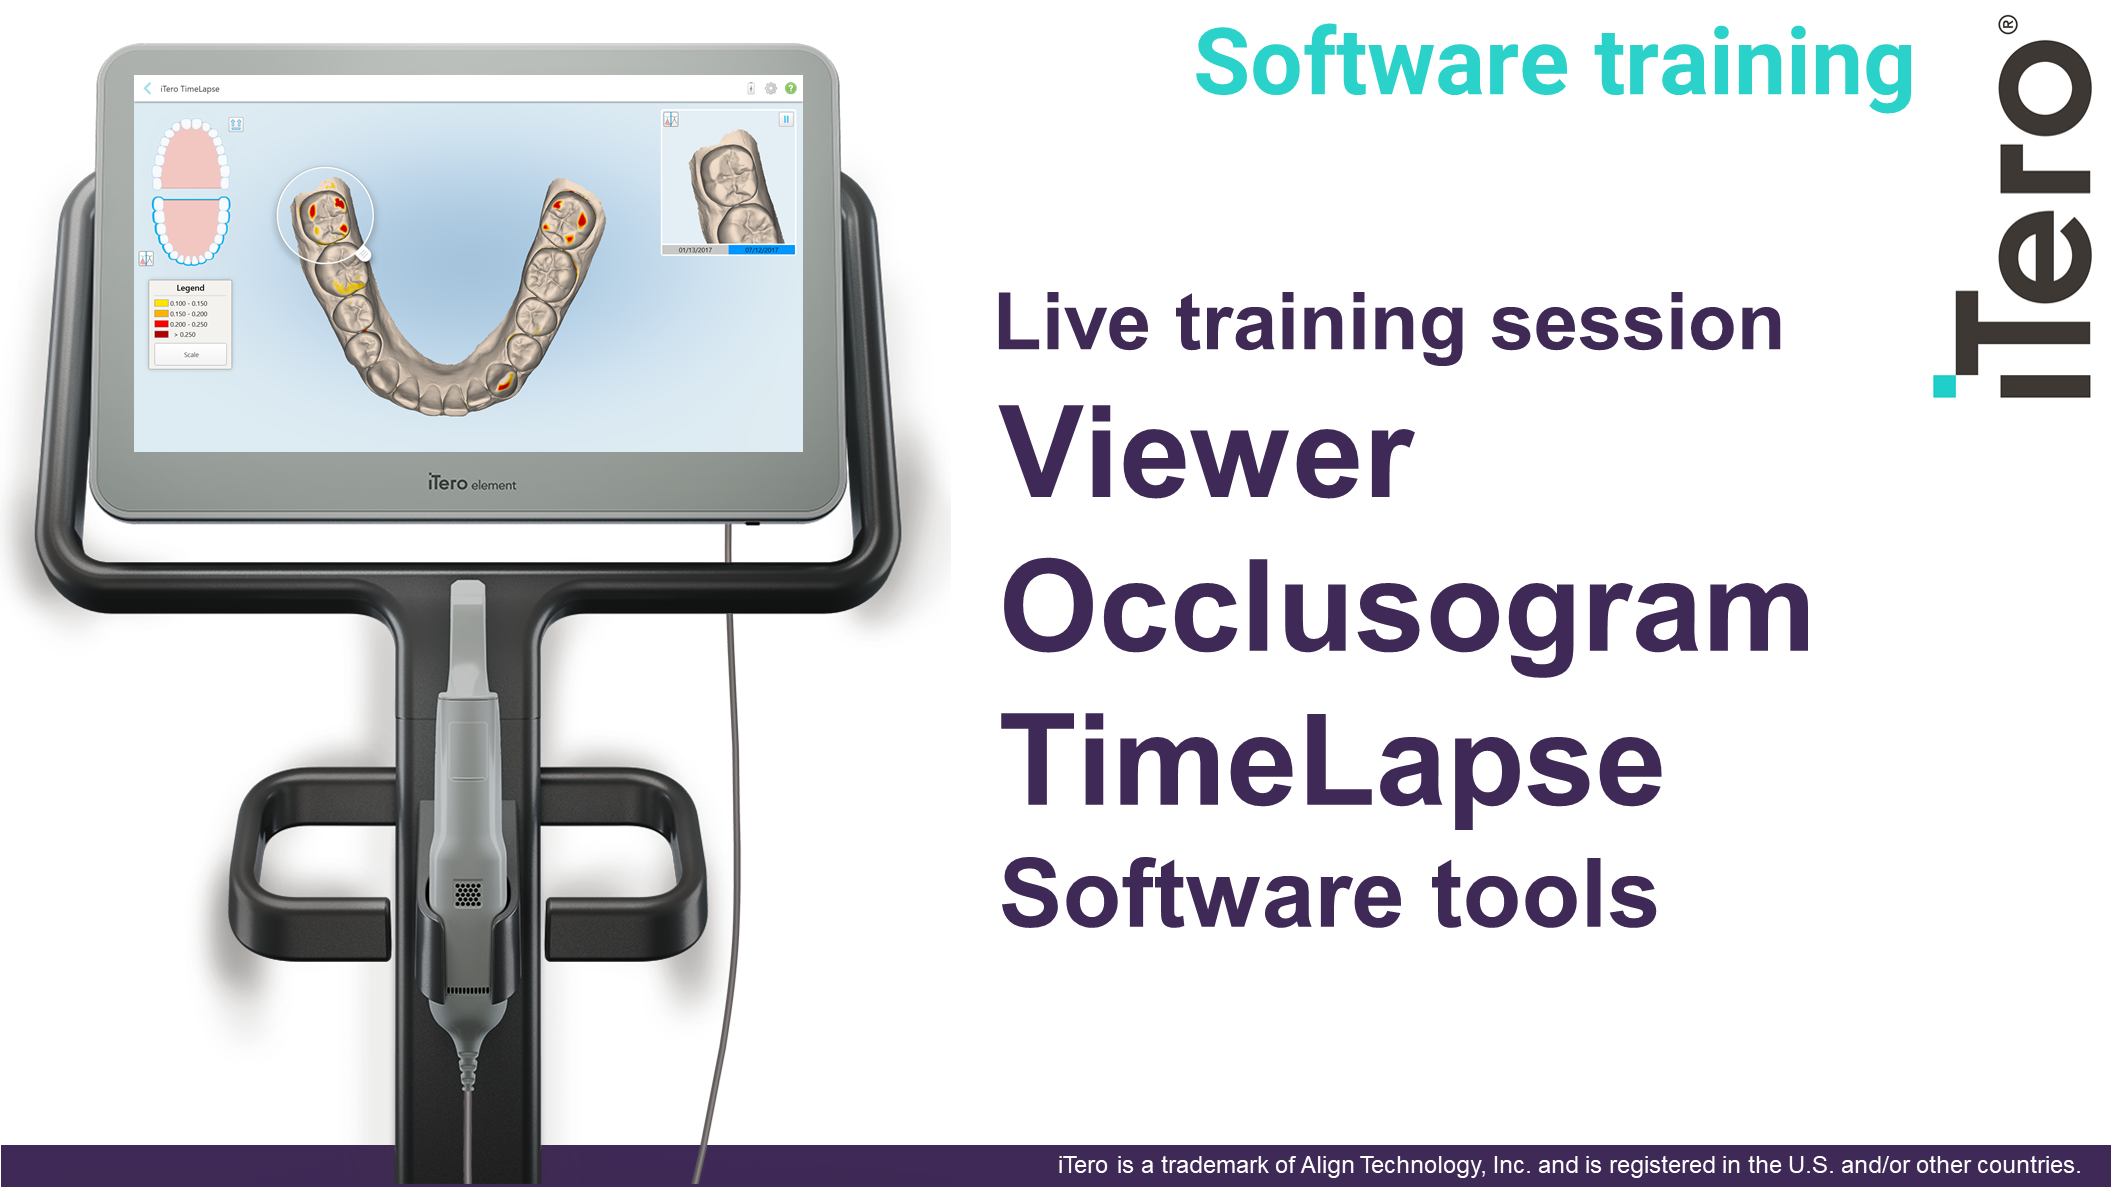 iTero Viewer/Occlusogram/Timelapse 12pmPDT(1pm MT/2pm CT/3pm ET)